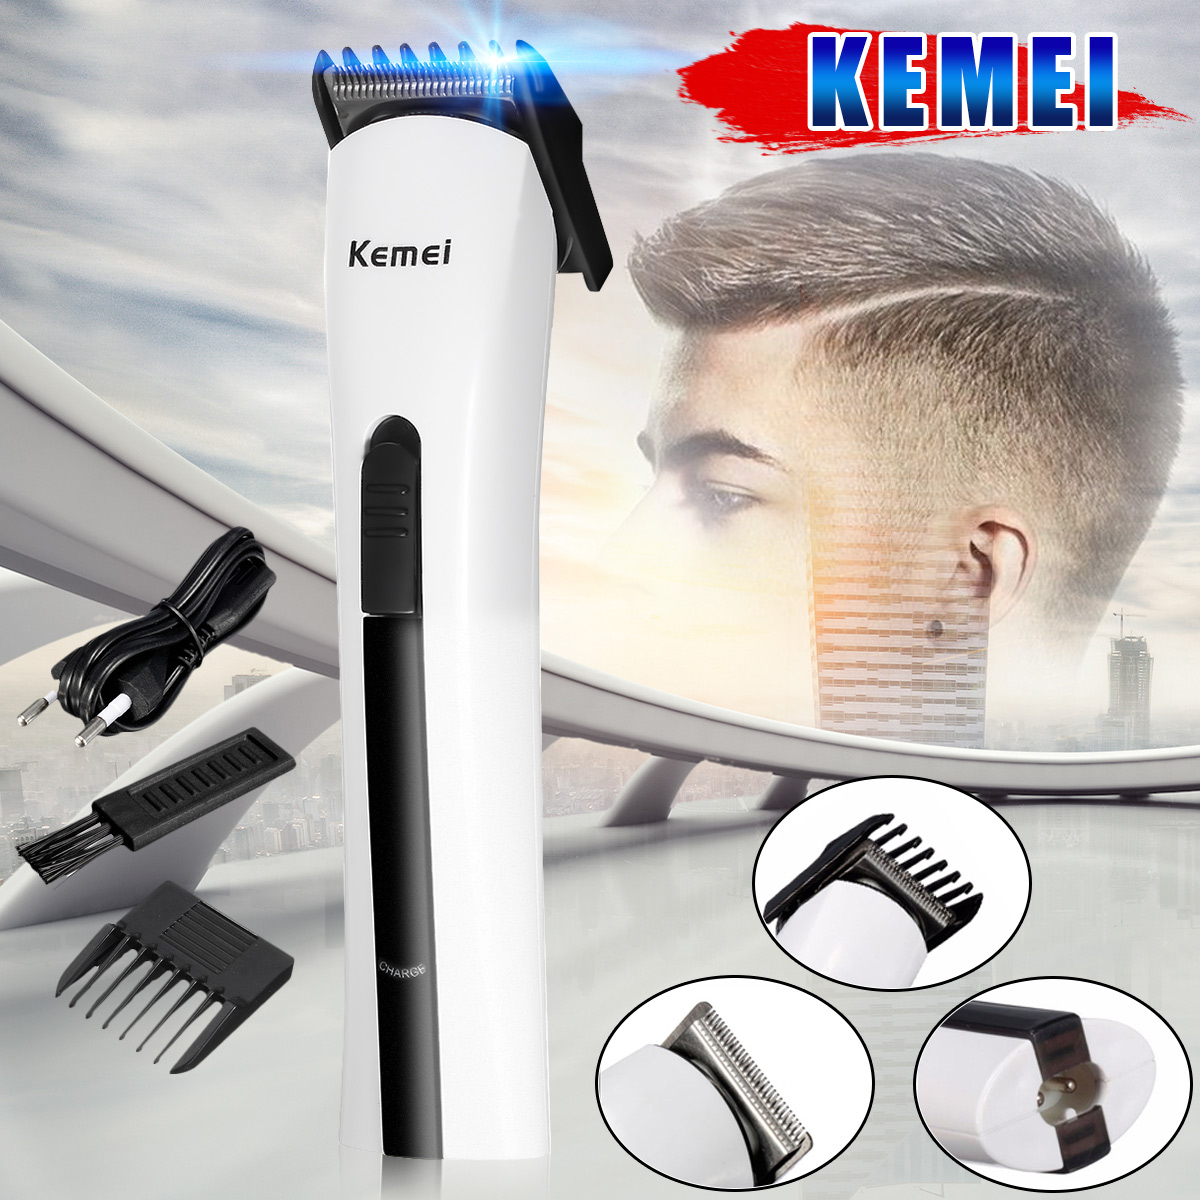 Kemei KM-2516 Rechargeable Hair Trimmer Men Electric Shaver Razor Beard Hair Clipper Cutting Trimmer Grooming цена